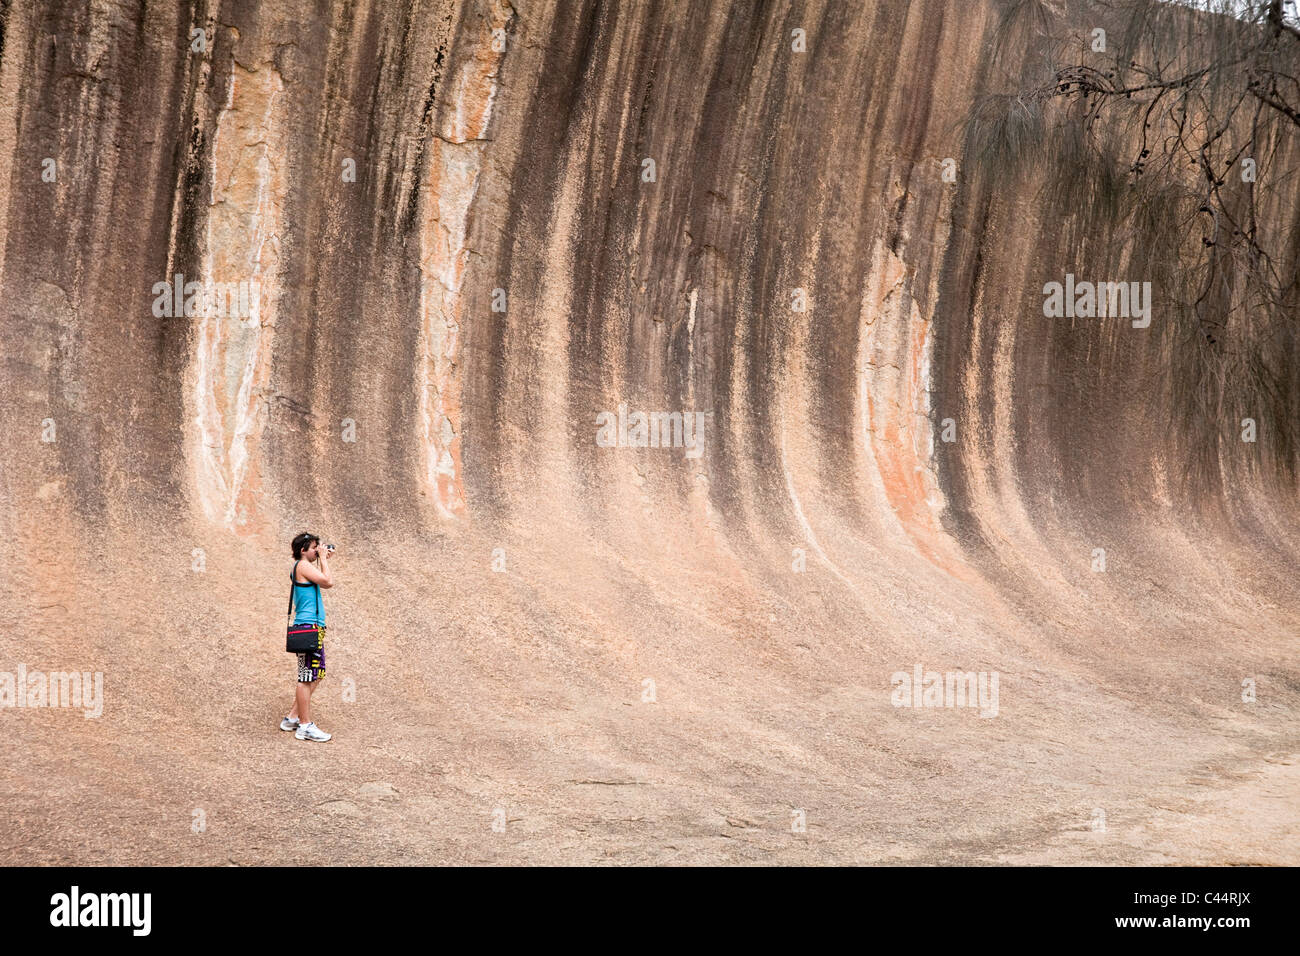 Tourist at Wave Rock - a natural rock formation near Hyden, Western Australia, Australia - Stock Image